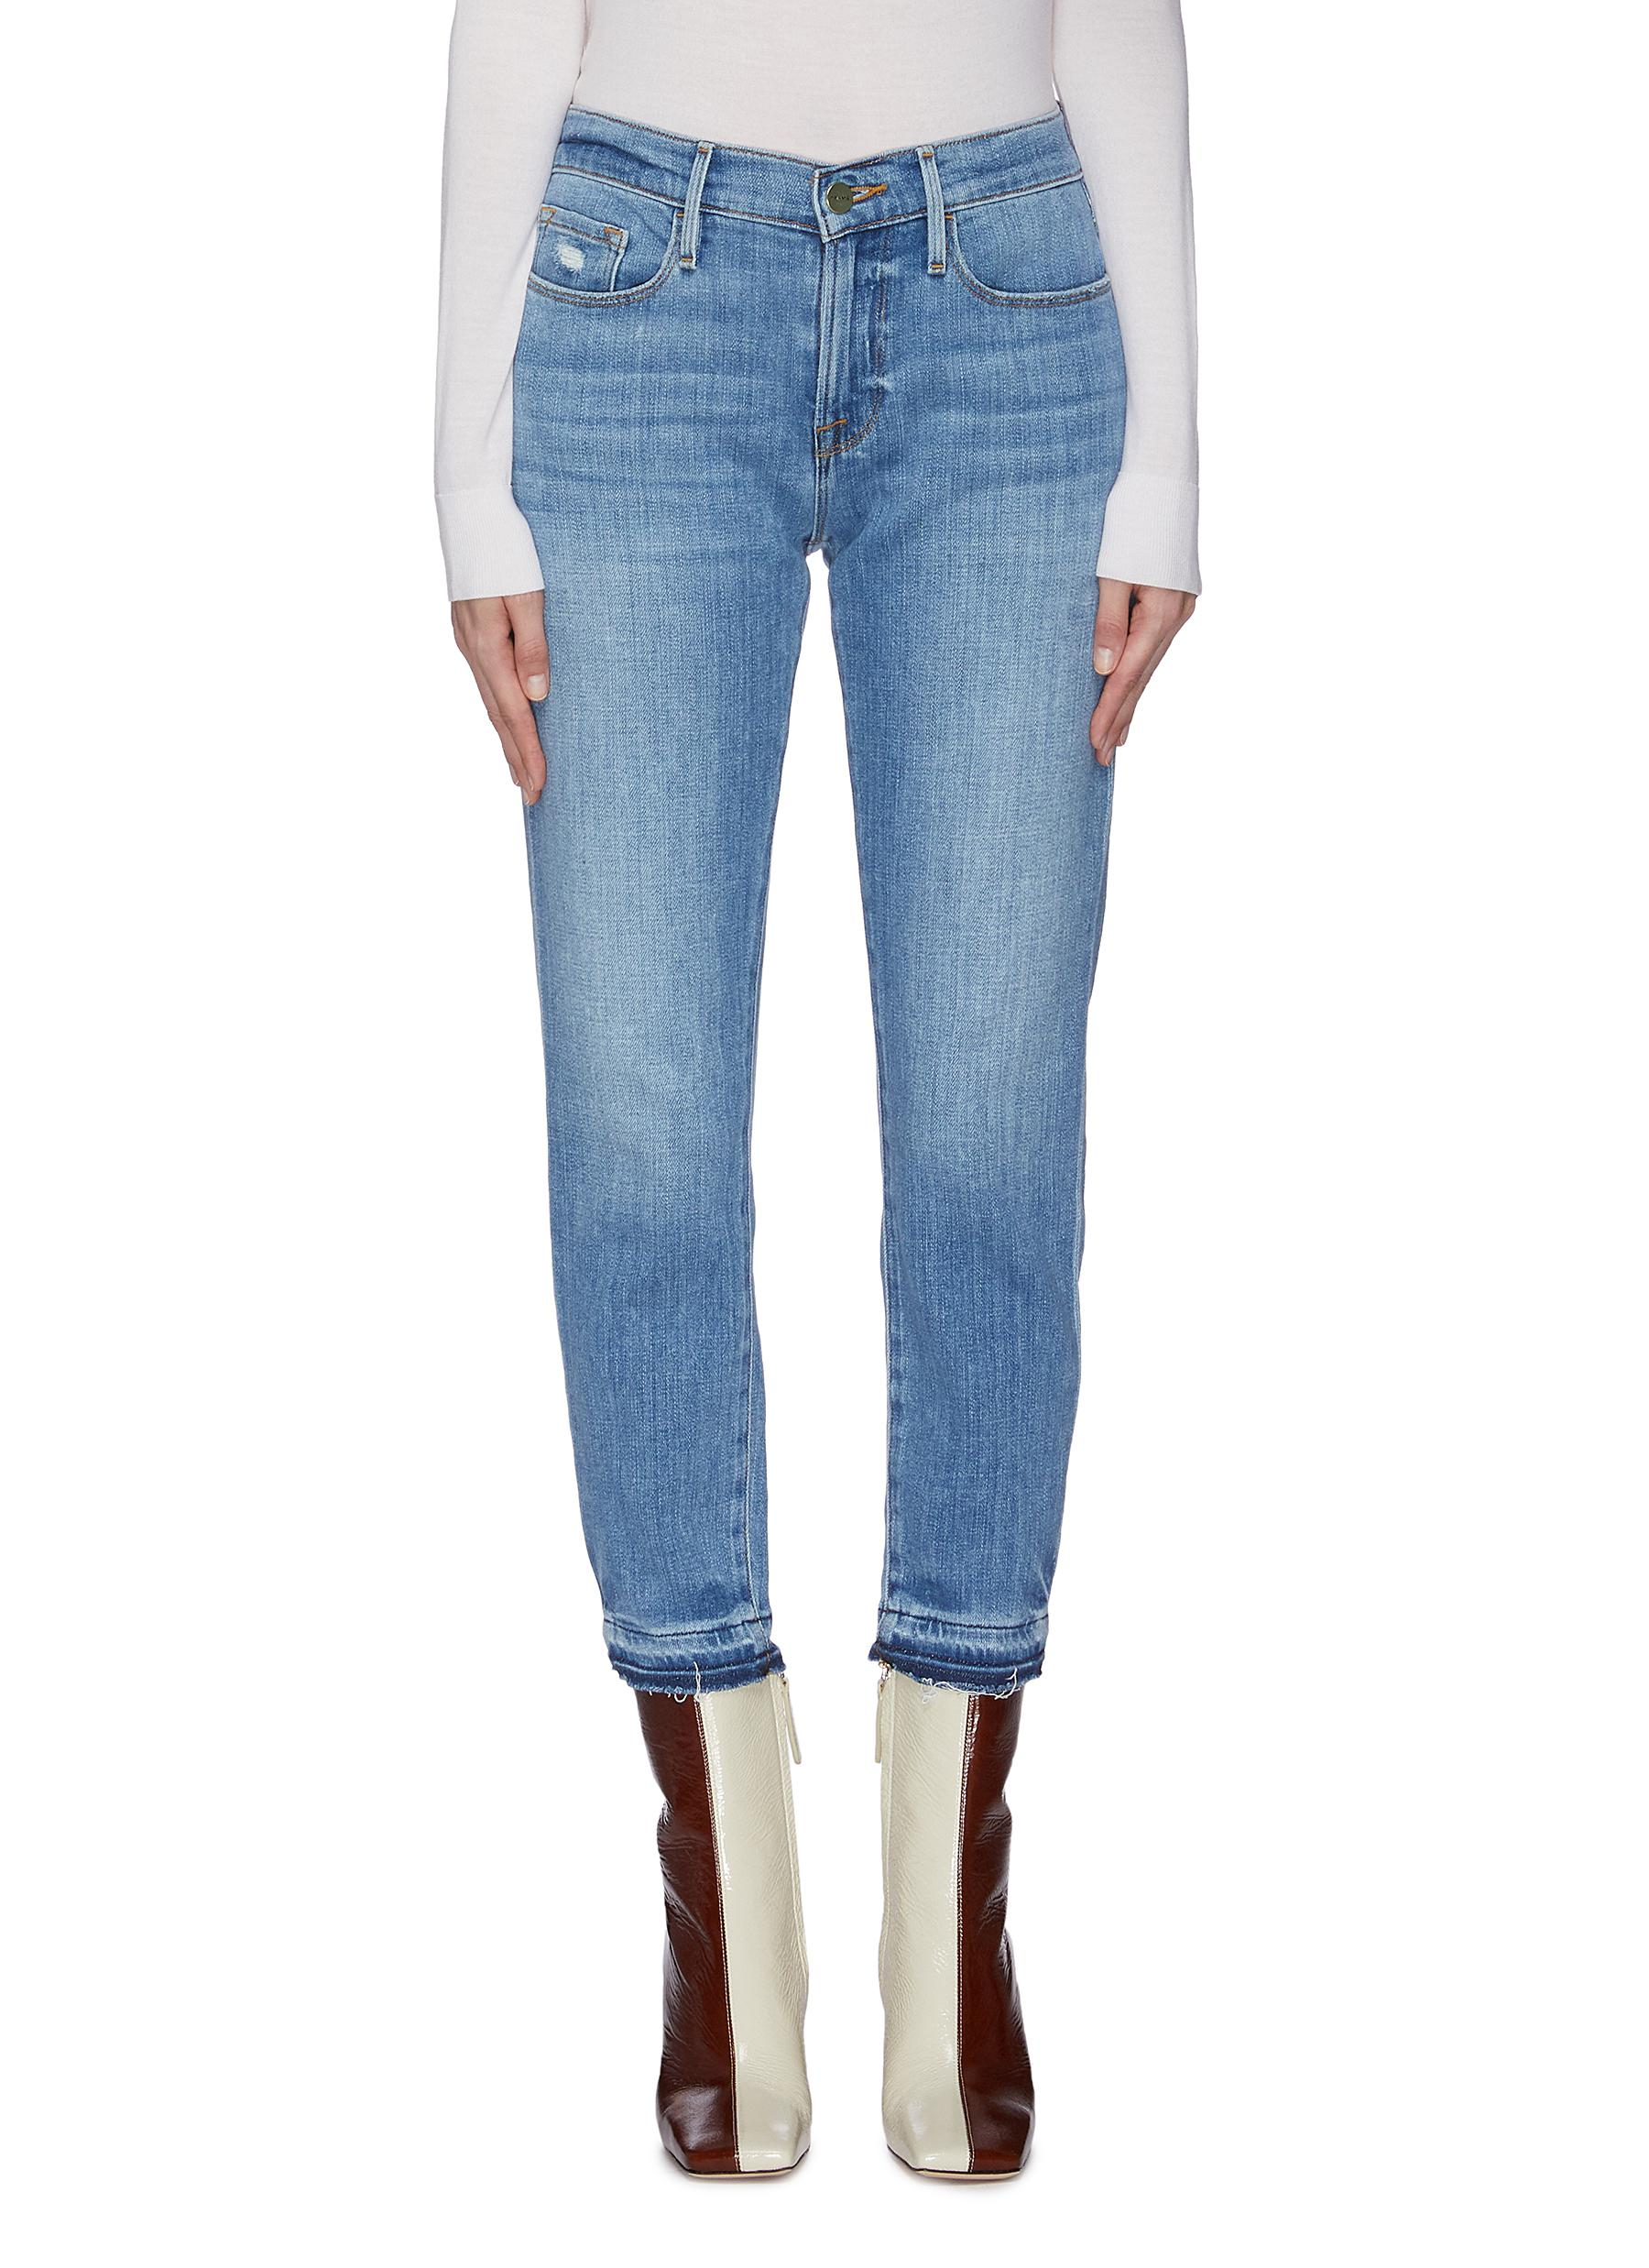 Buy Frame Denim Jeans 'Le Garcon' cropped jeans